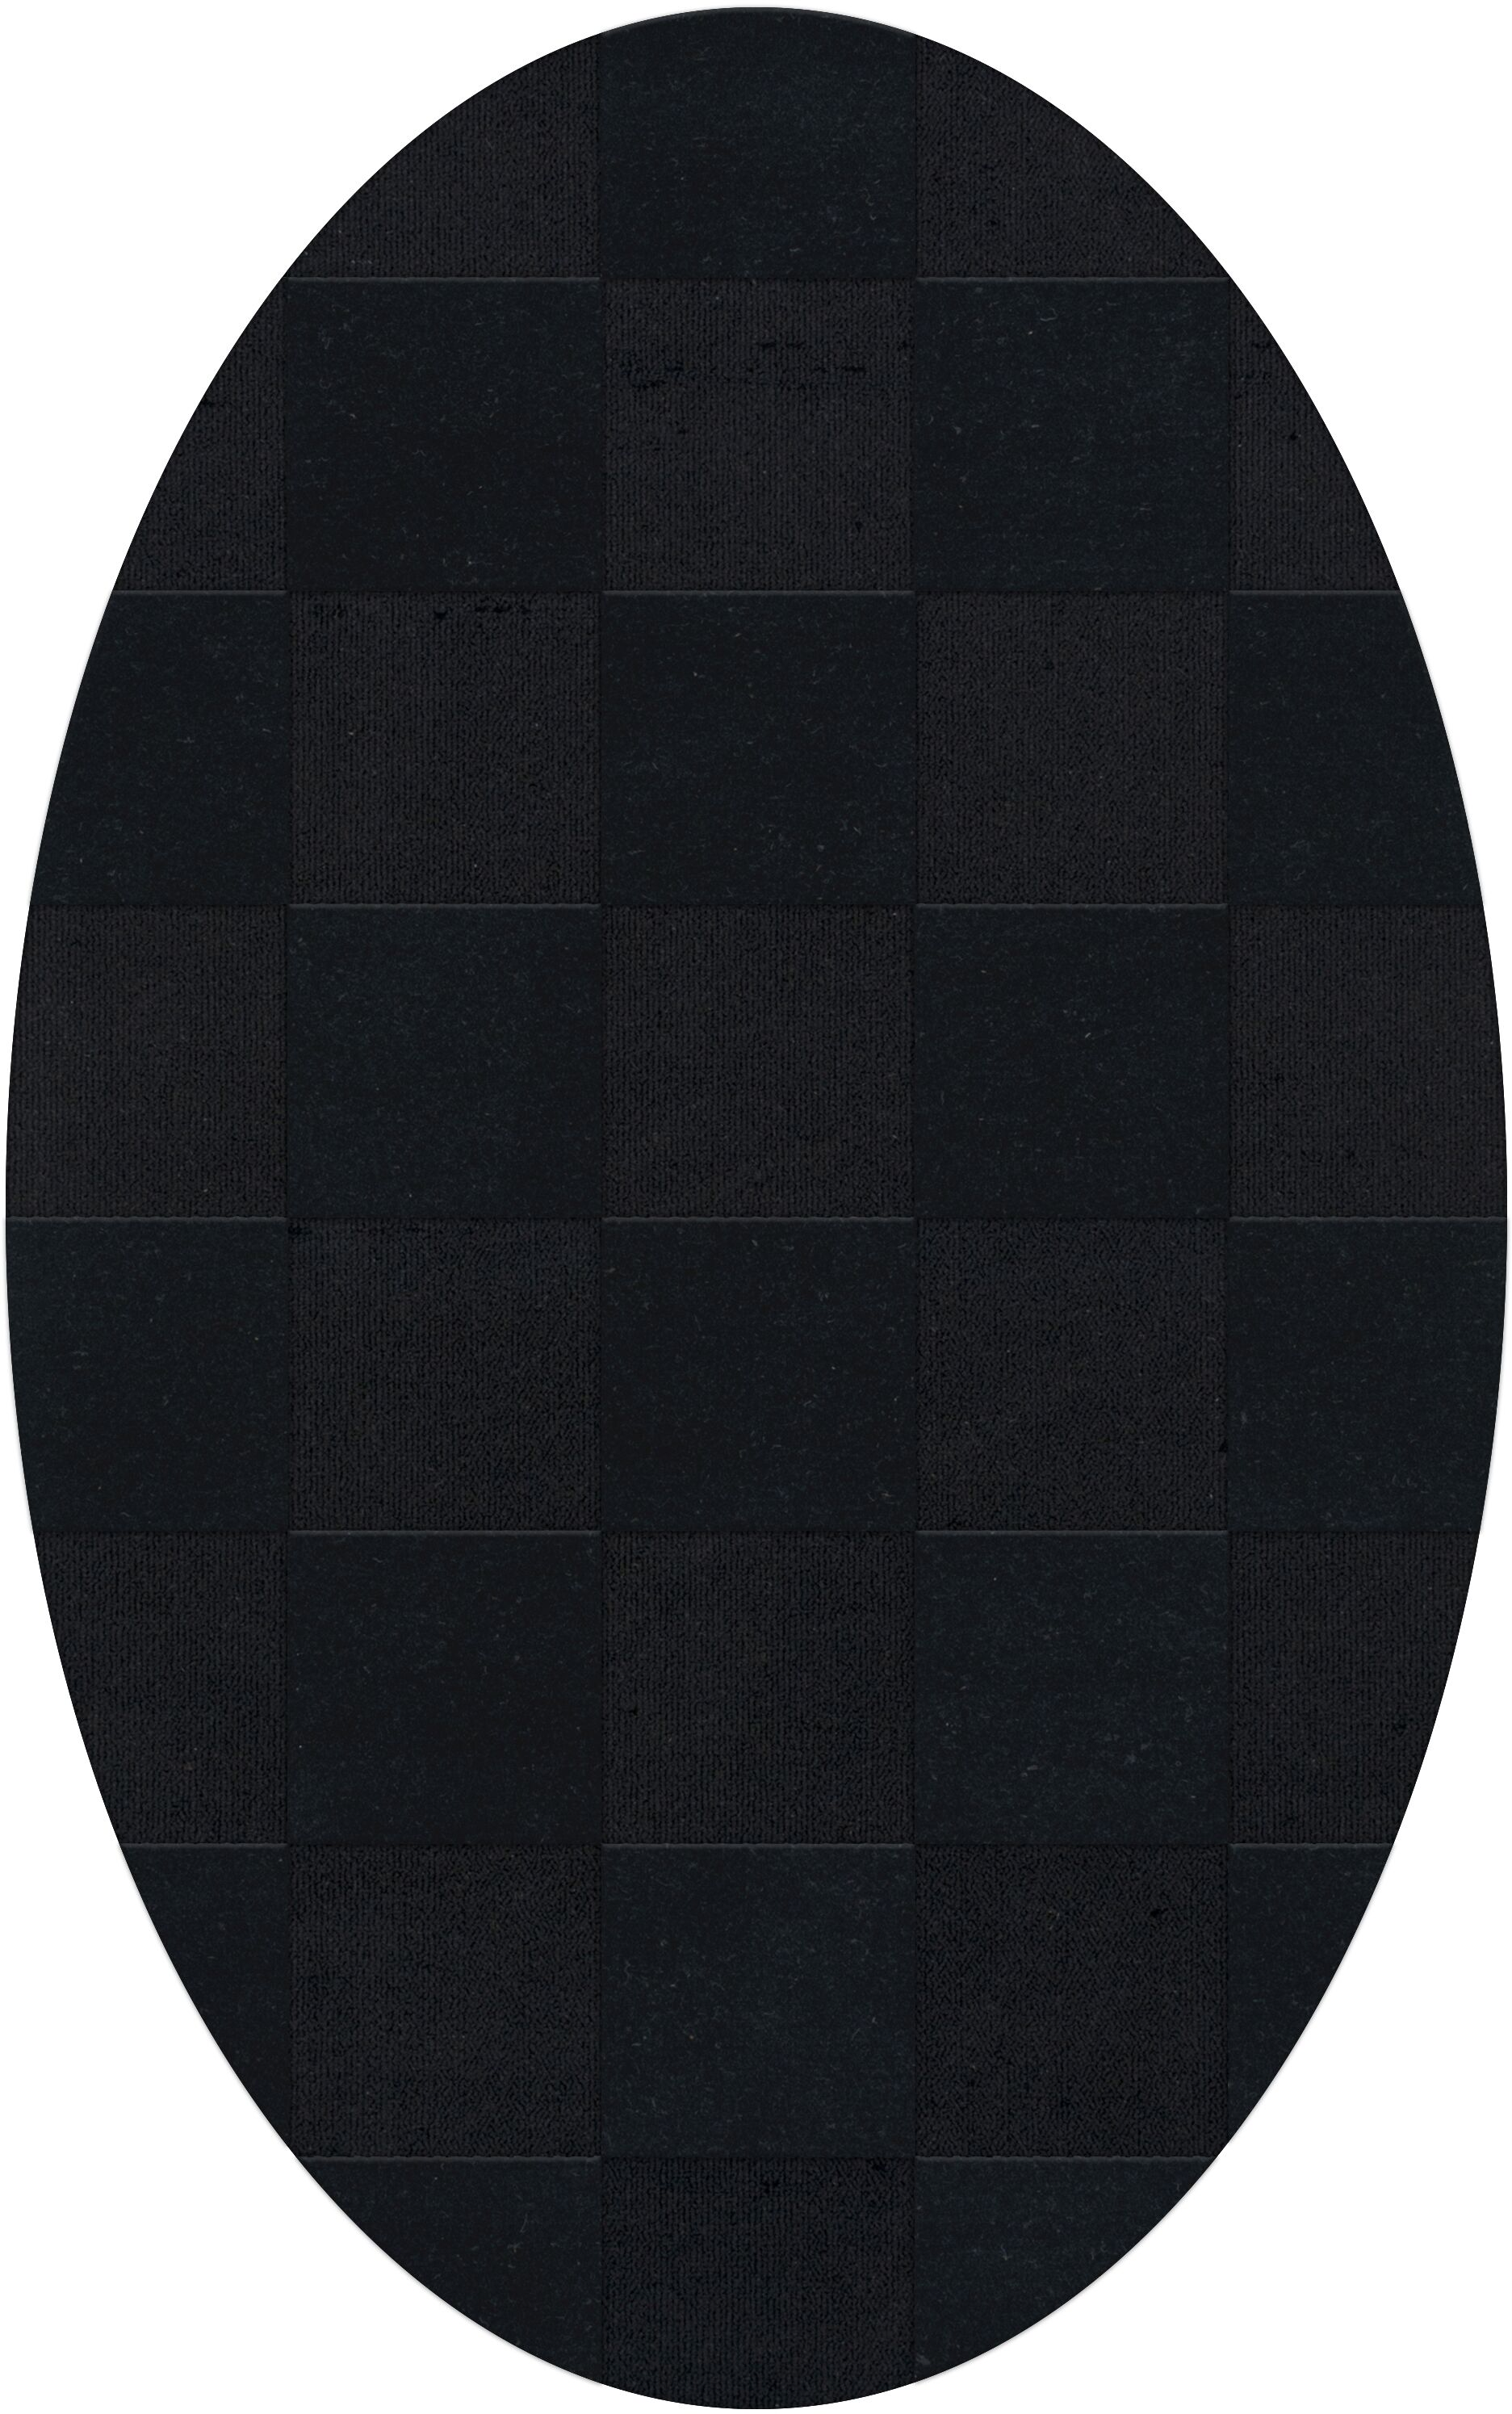 Dover Tufted Wool Black Area Rug Rug Size: Oval 4' x 6'